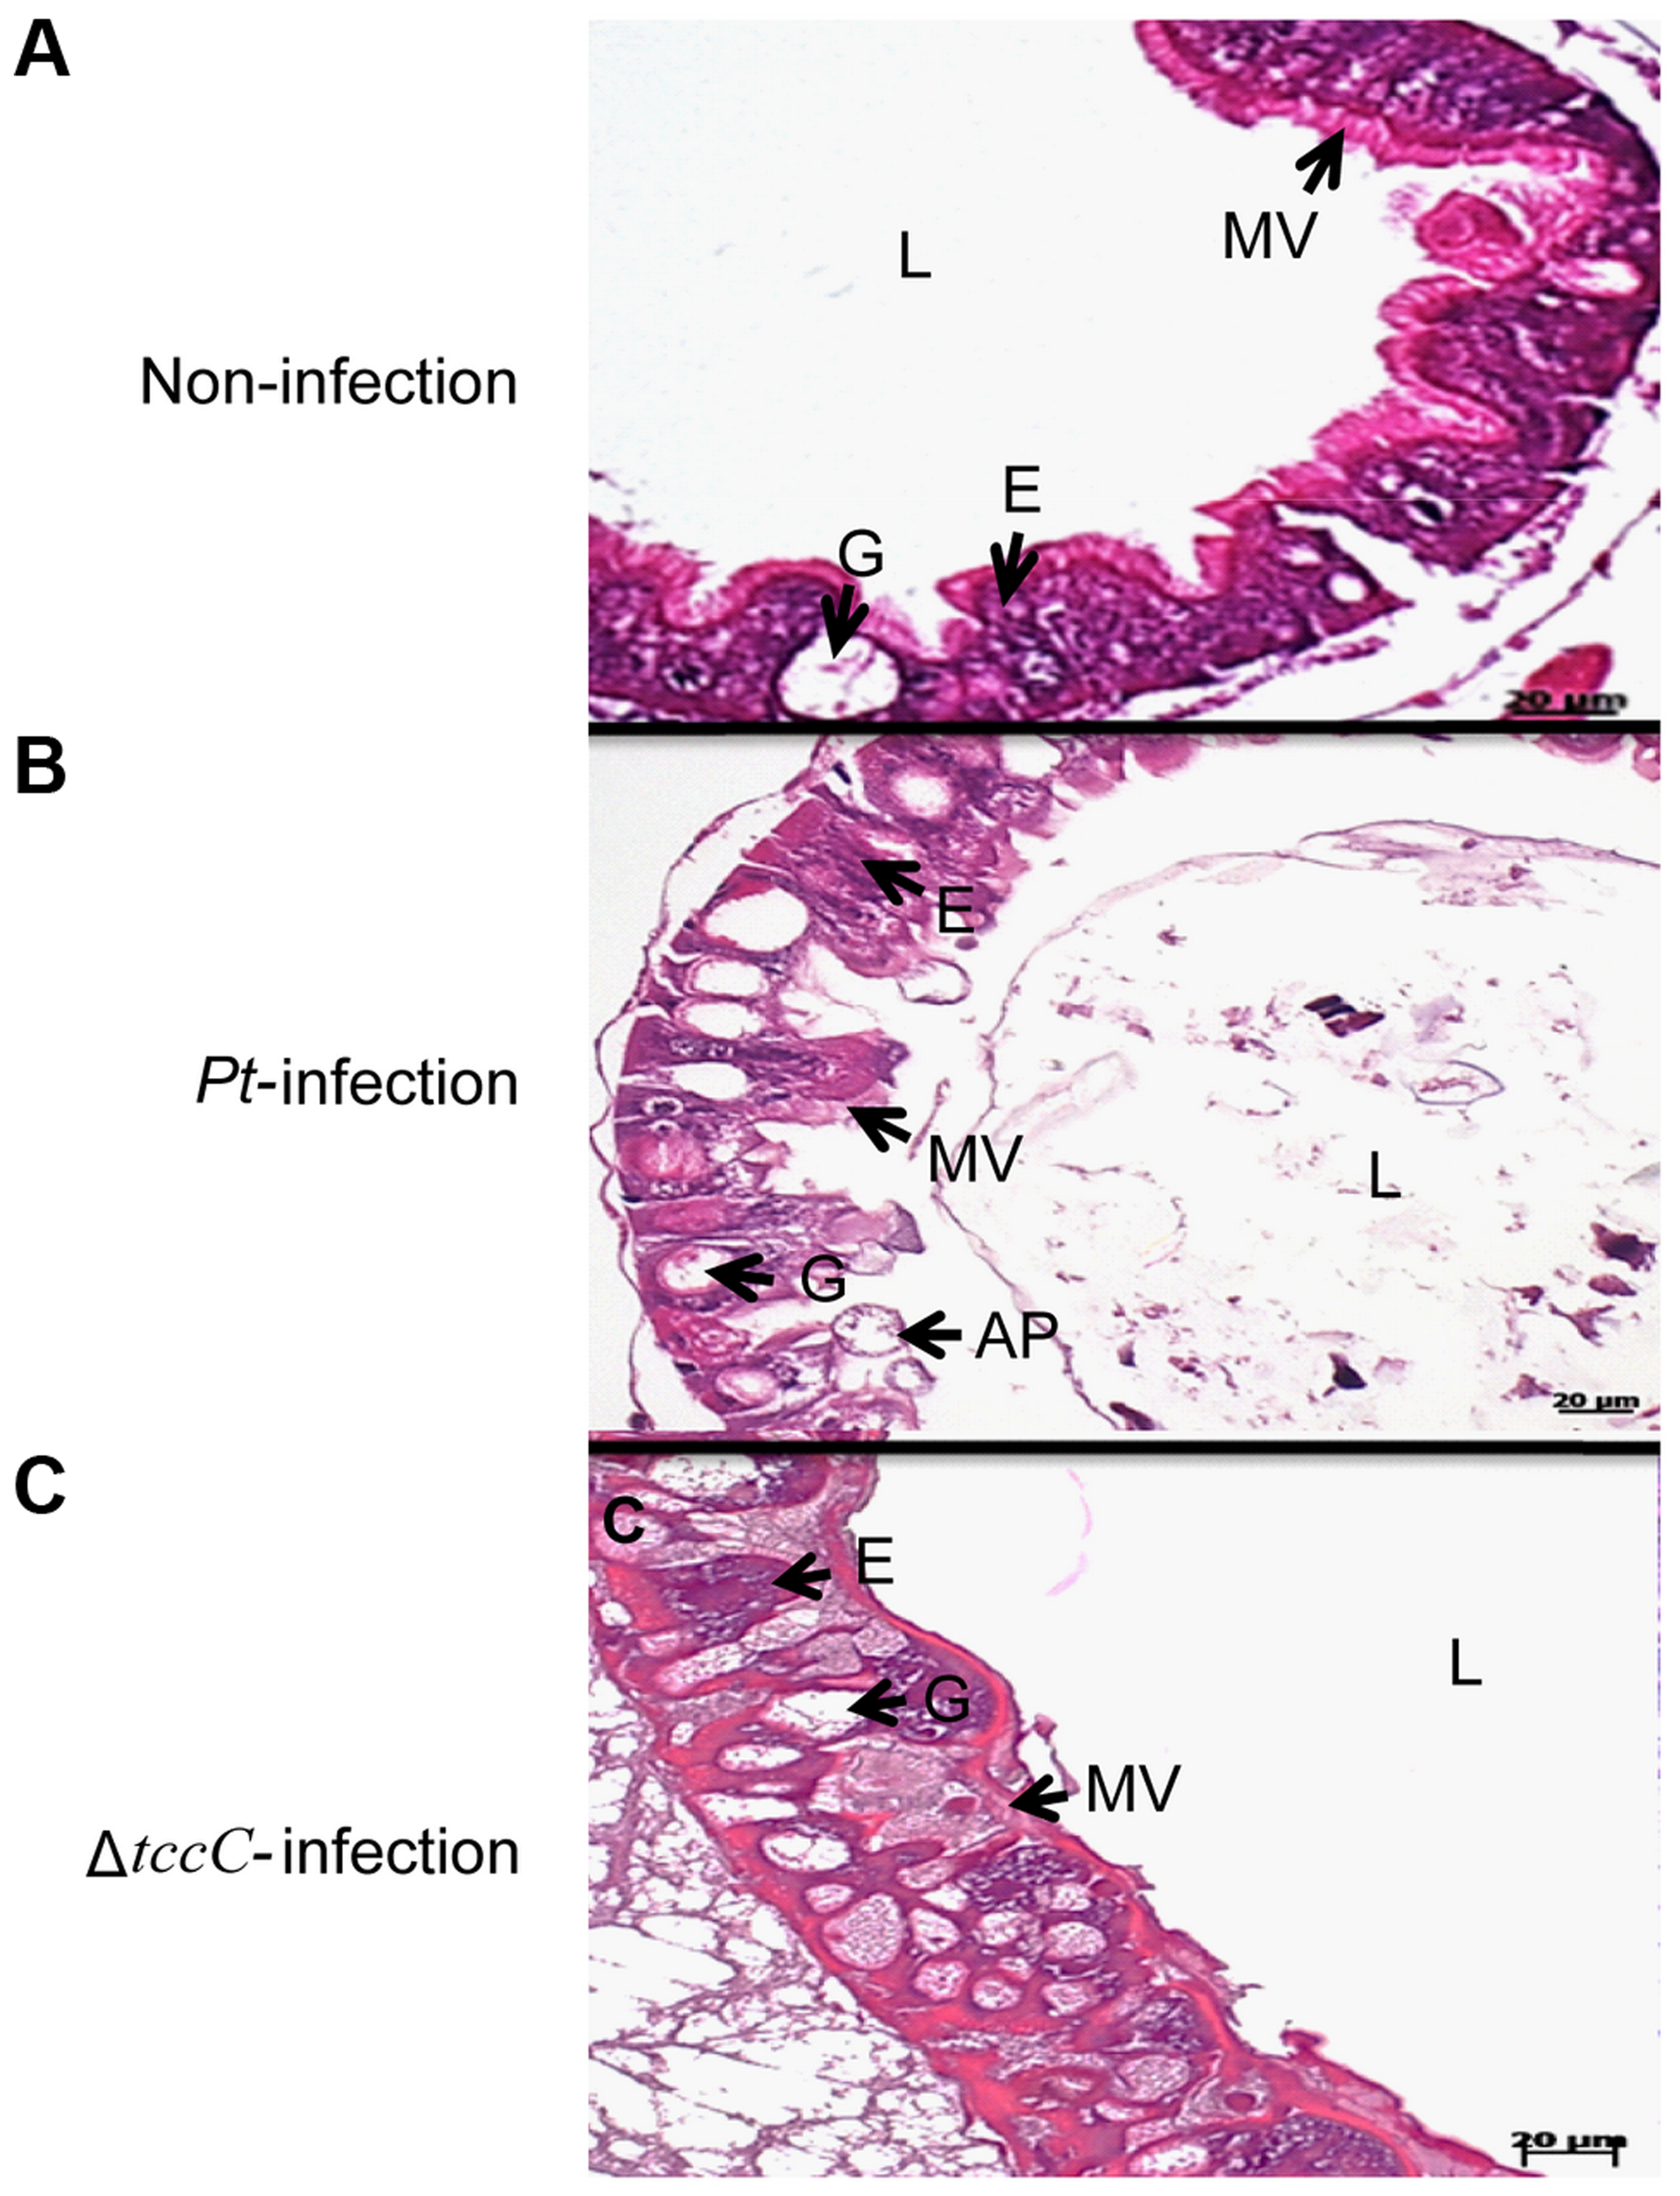 TccC of <i>P. taiwanensis</i> contributes to damage to the midgut of <i>P. xylostella</i> larvae.